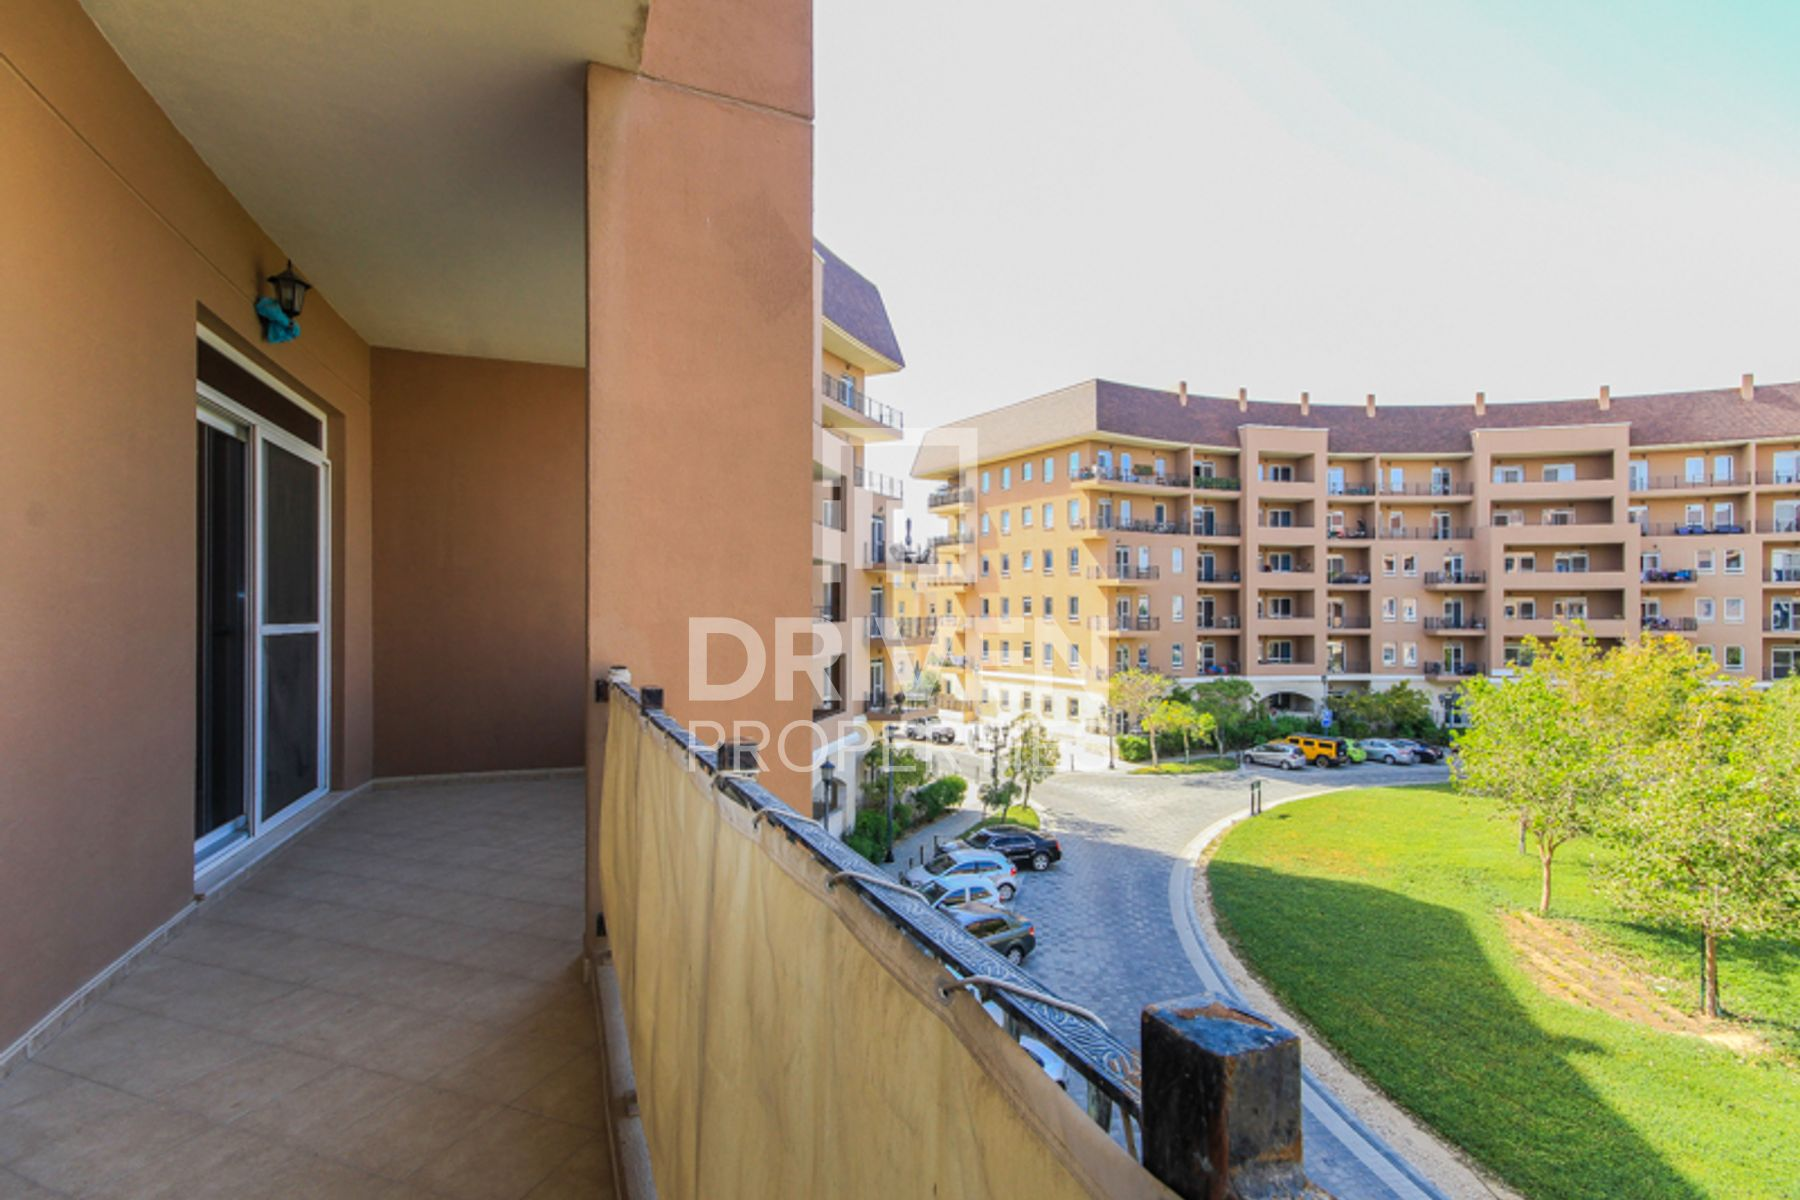 Apartment for Rent in Shakespeare Circus 2 - Motor City